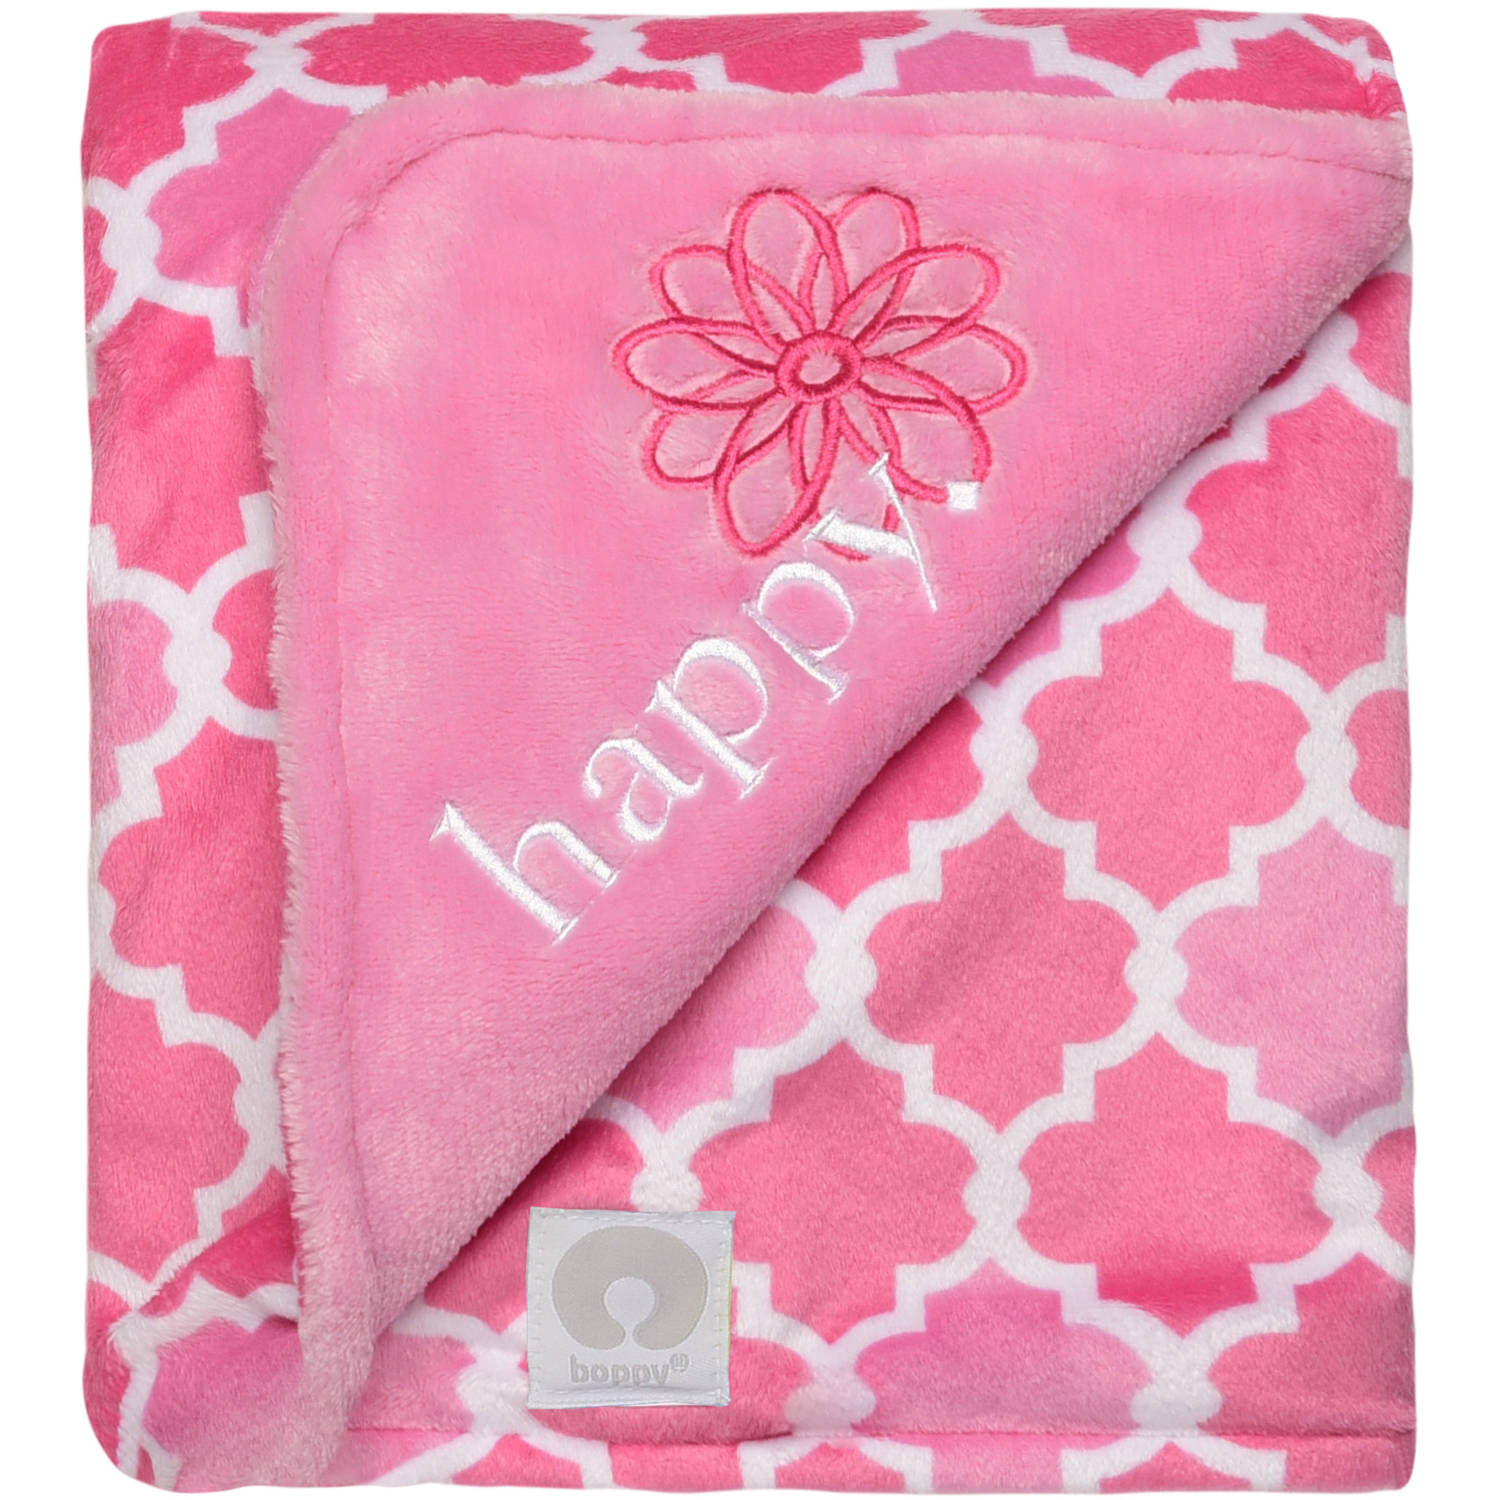 Boppy Luxurious Plush Reversible Appliqued Blanket, Happy/Lattice Print